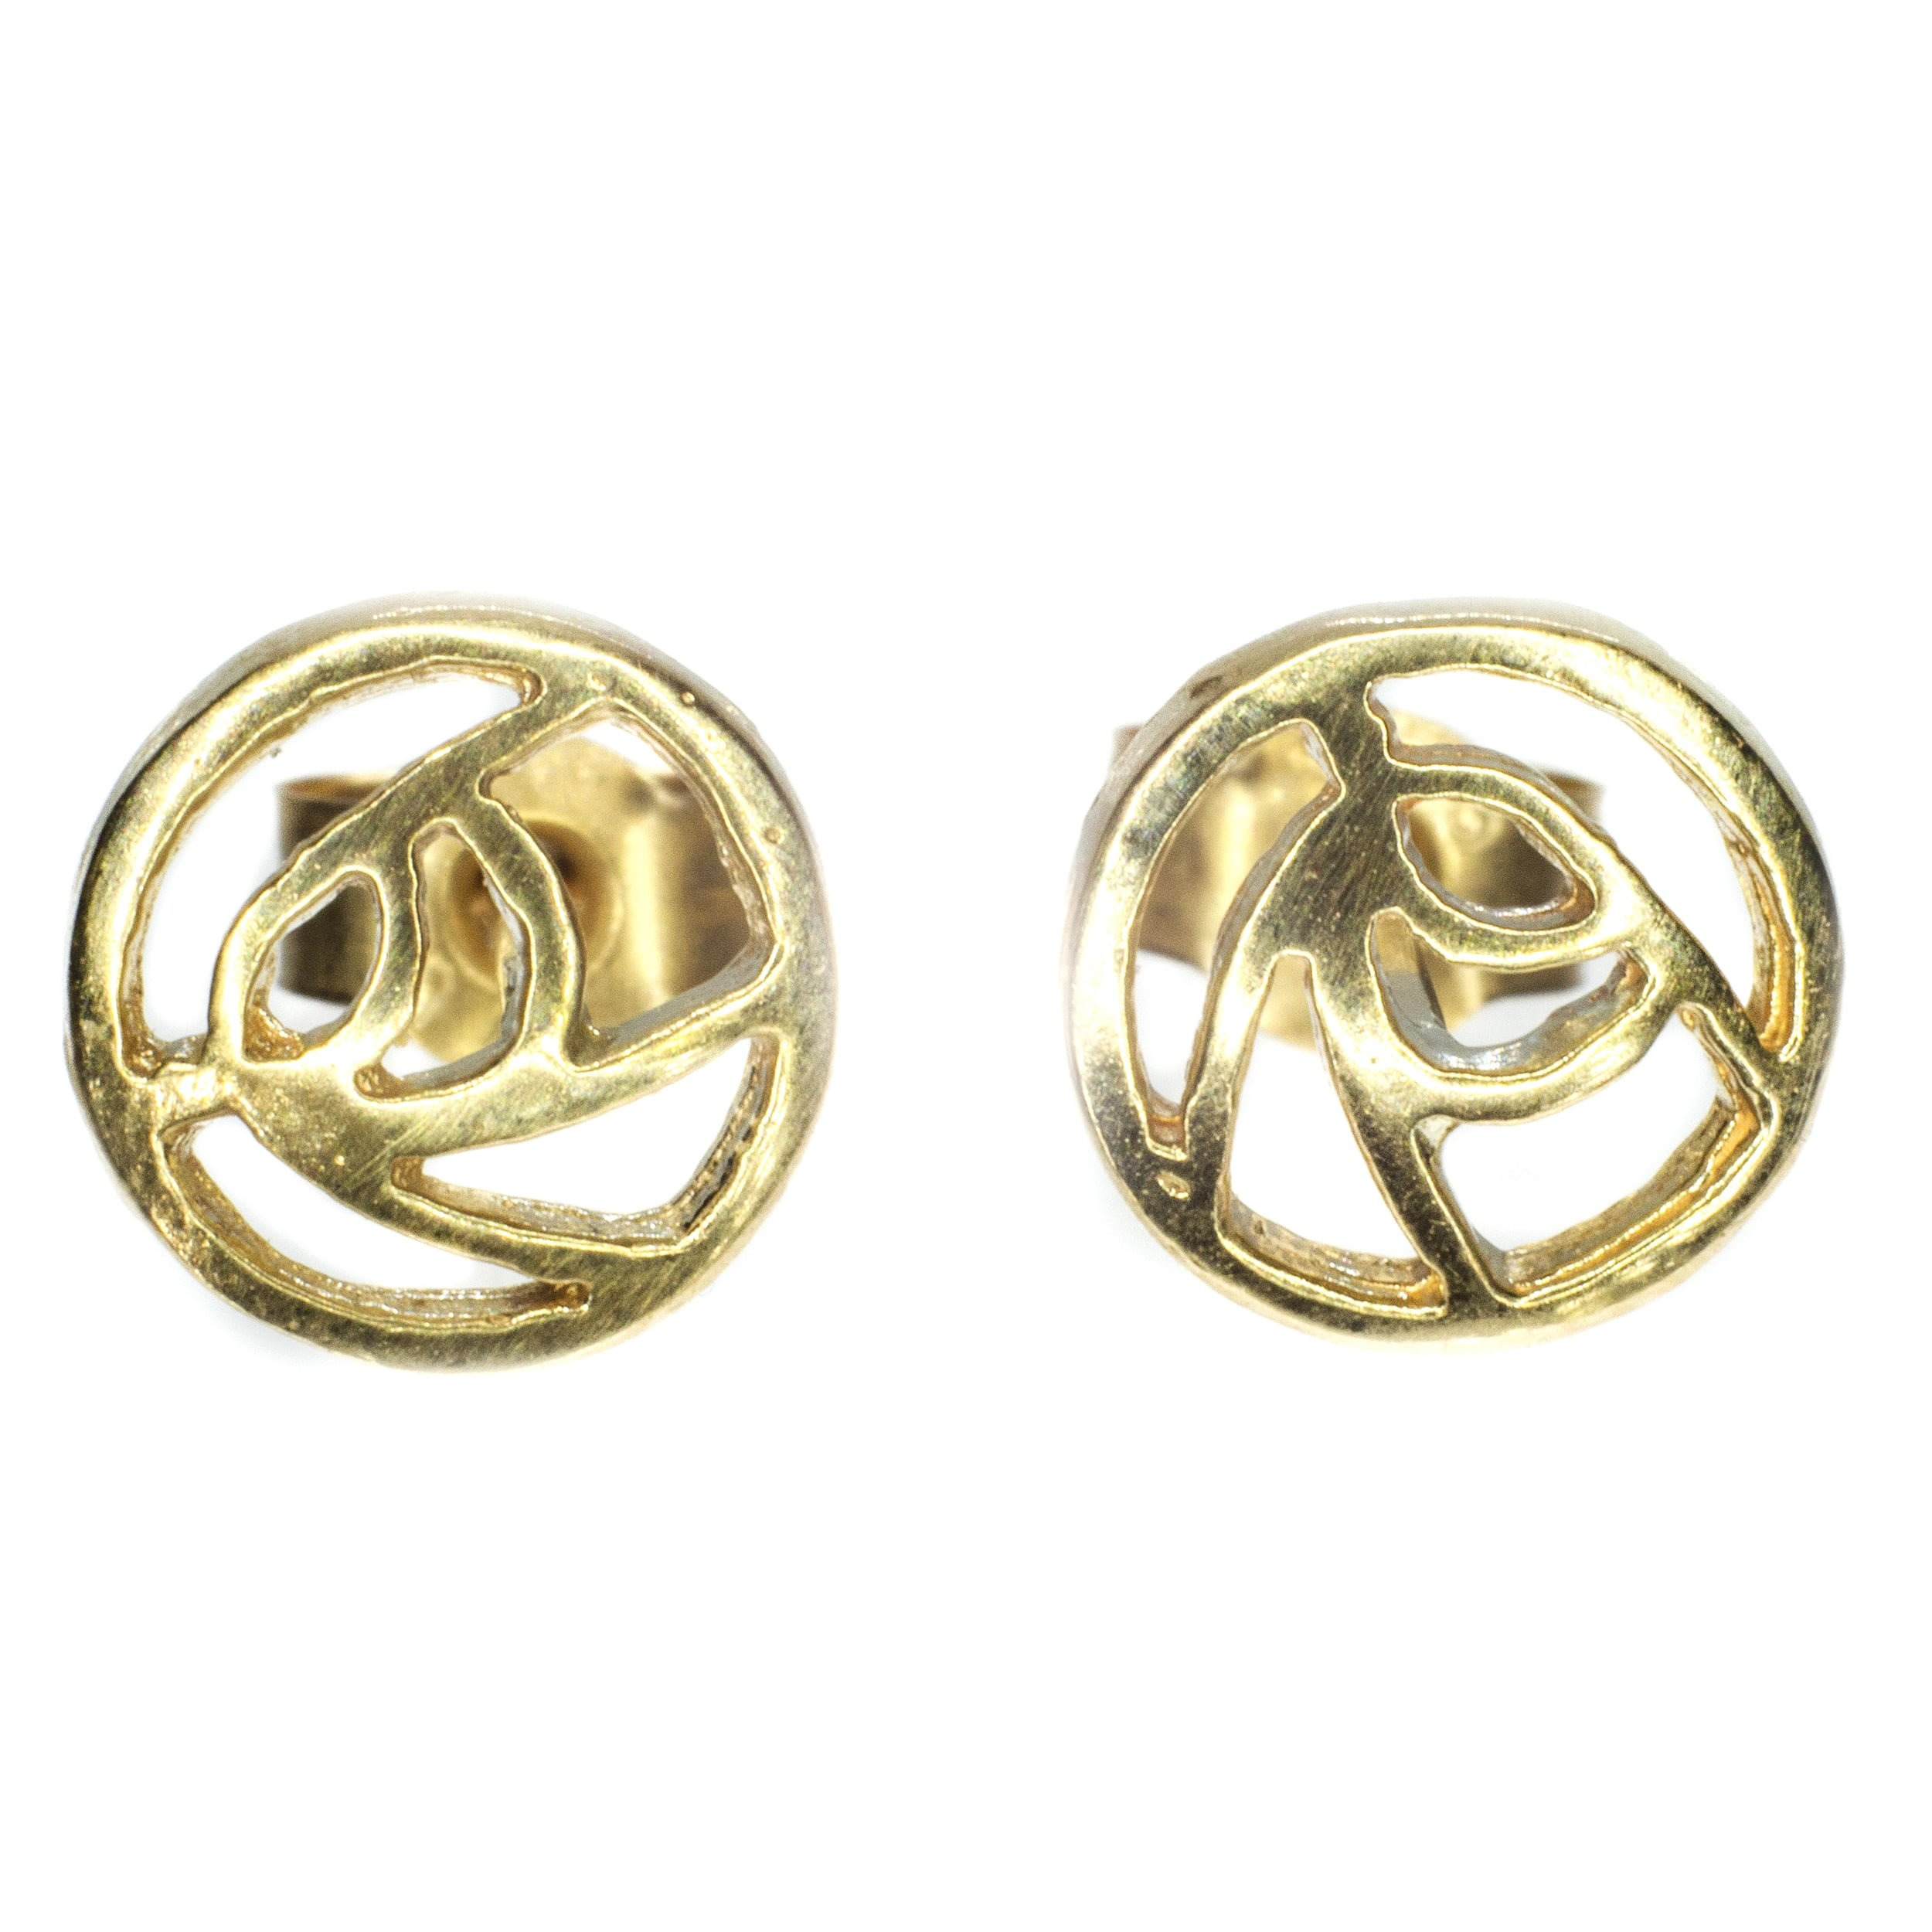 6mm Rennie Mackintosh gold stud earing 9ct yellow gold